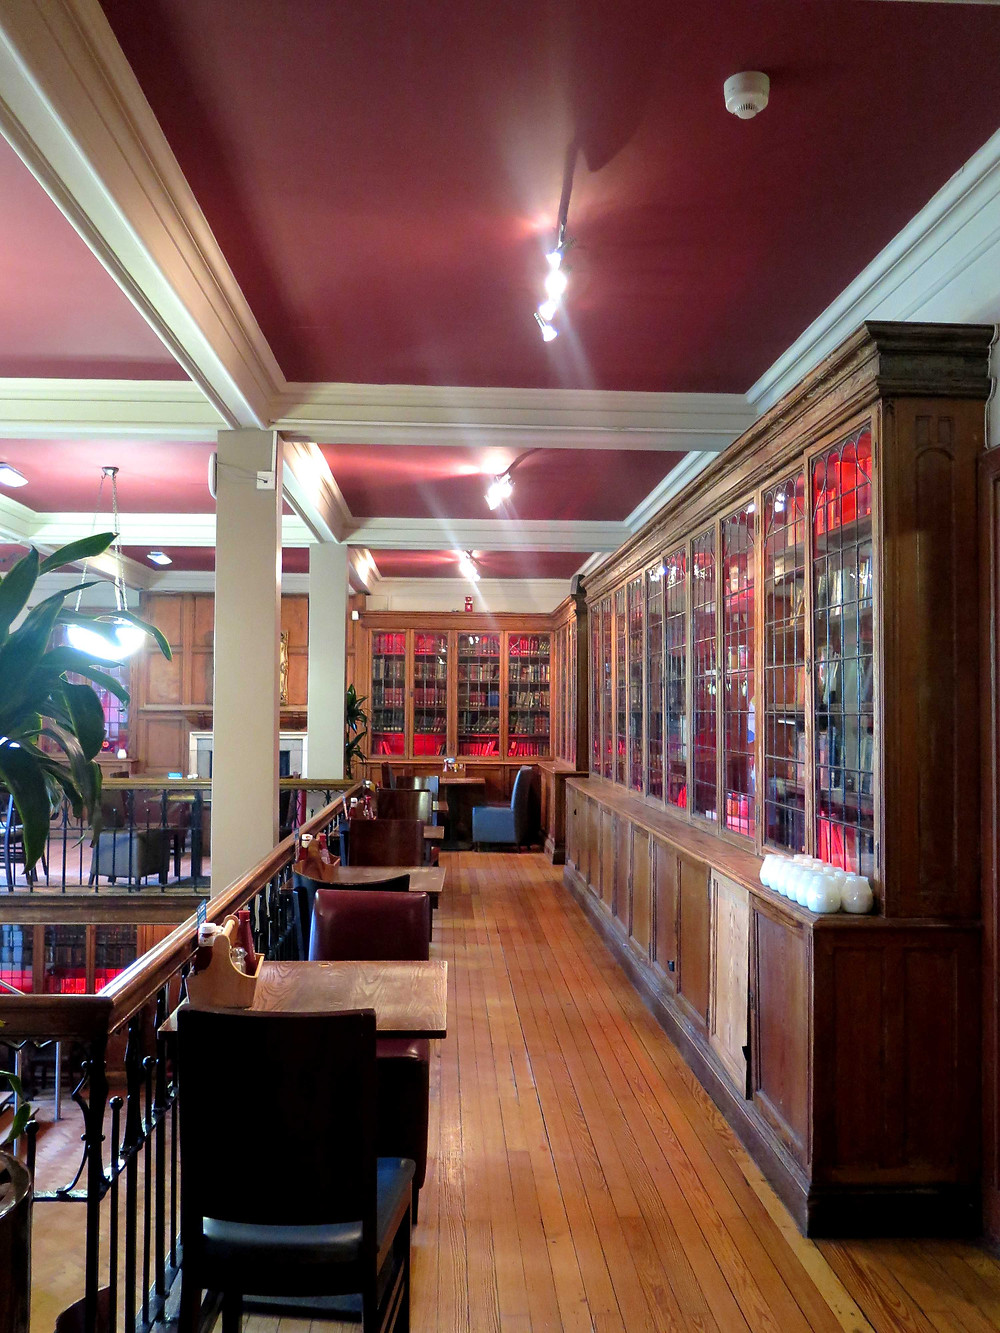 teviot library bar edinburgh